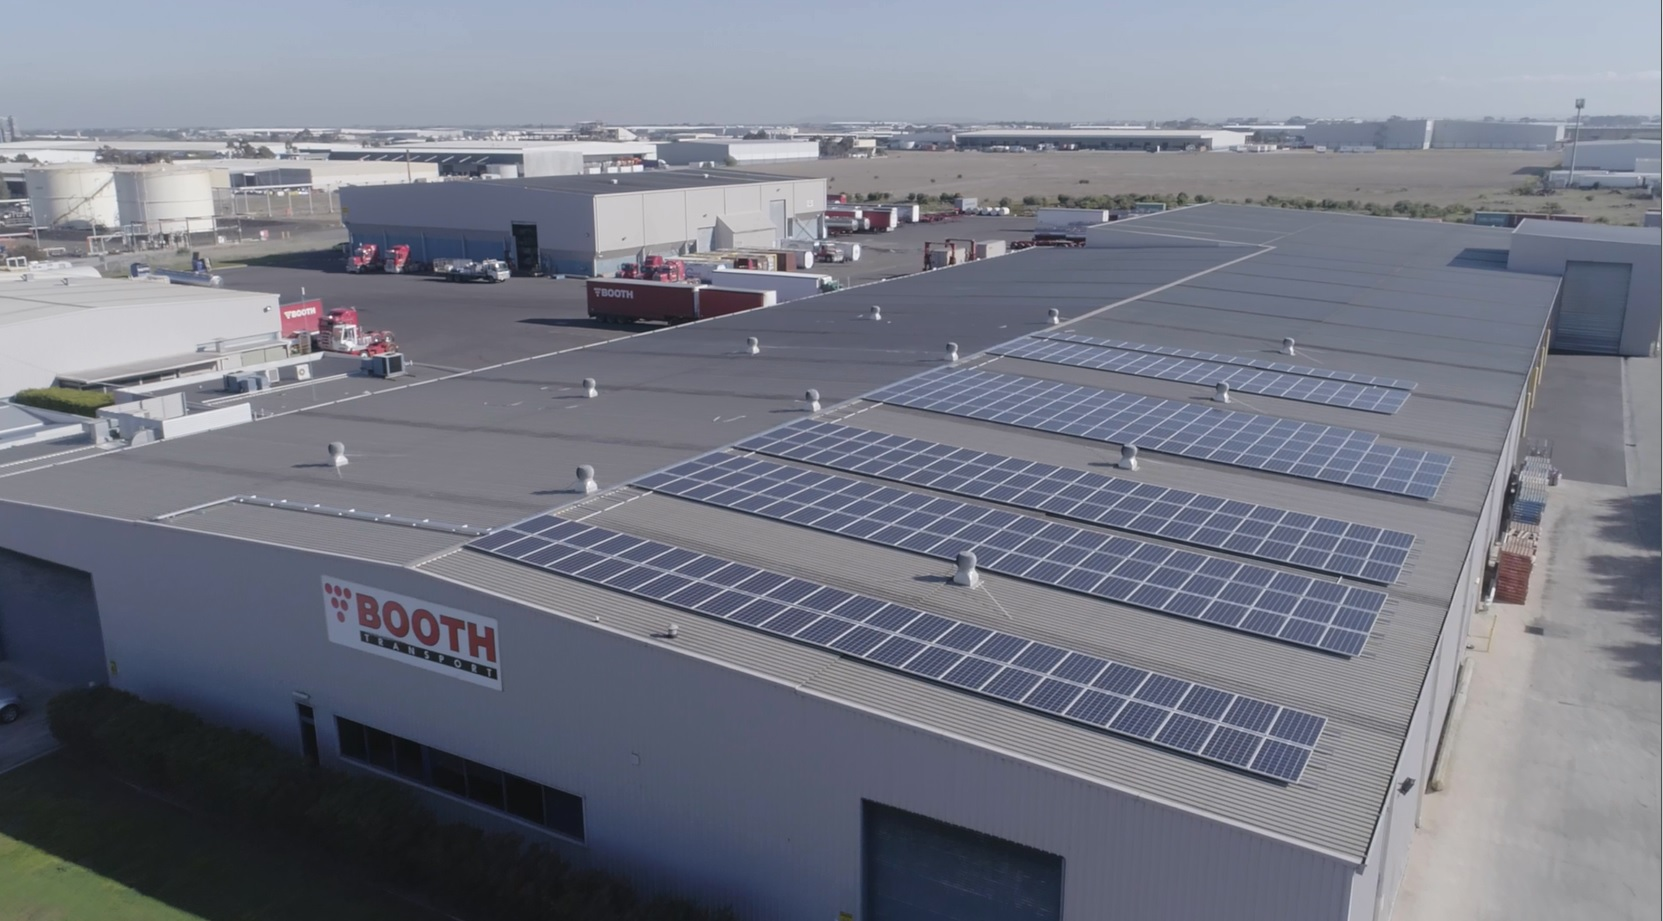 Solar panels have been installed on top of the Booth Transport headquarters